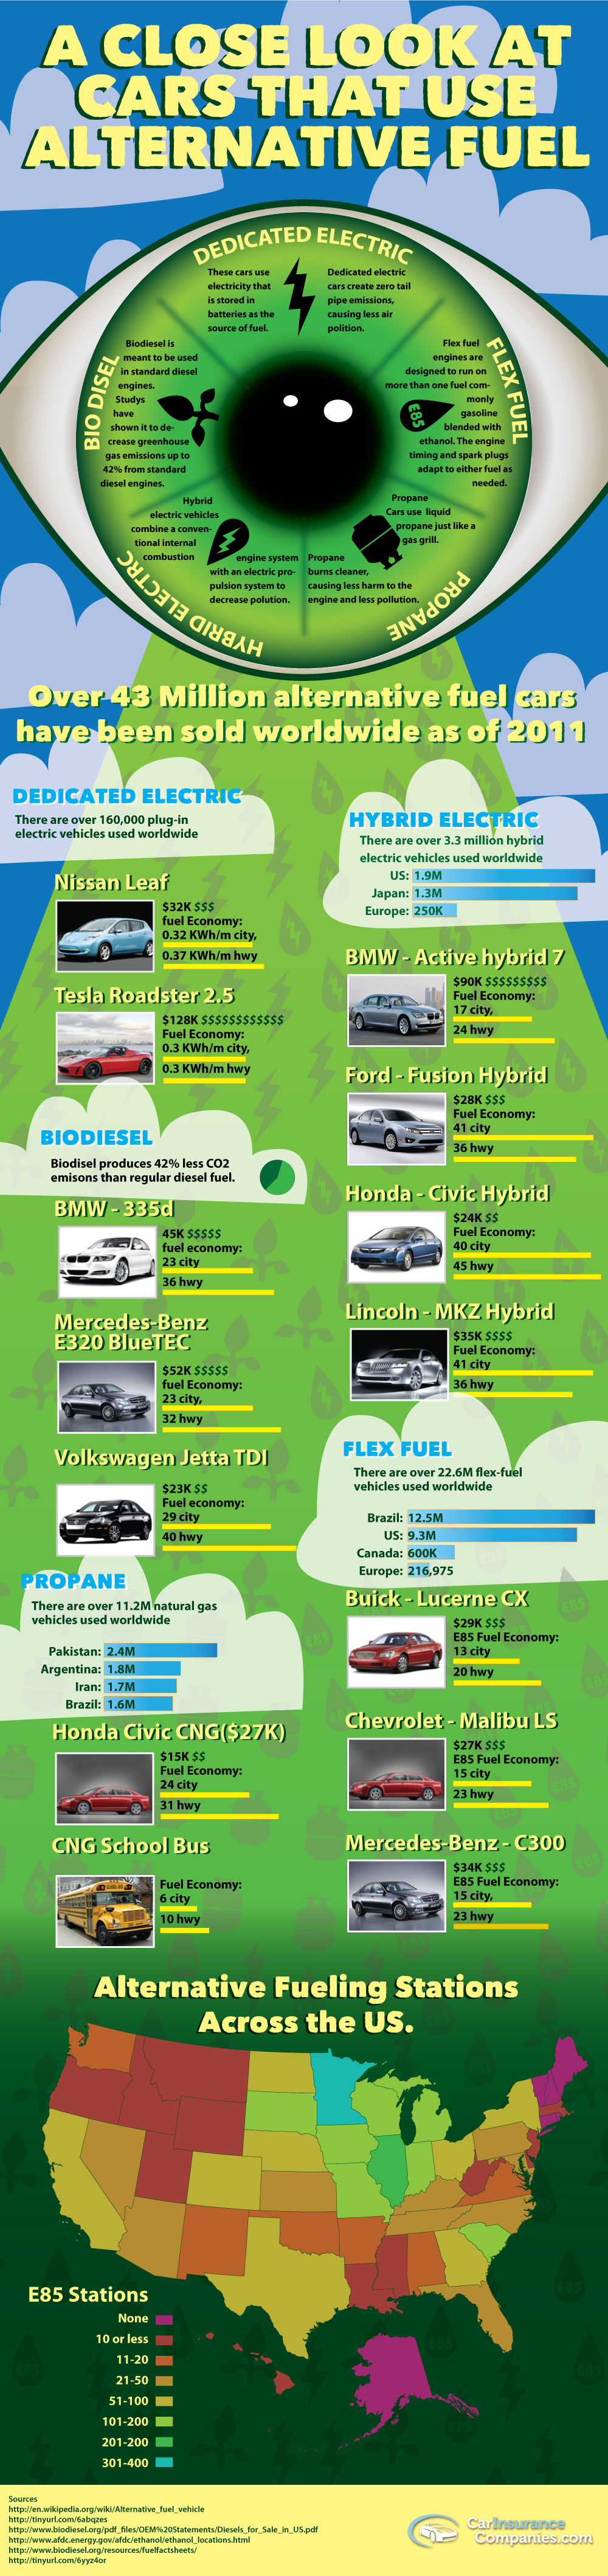 Alternative Fuel Cars Compared